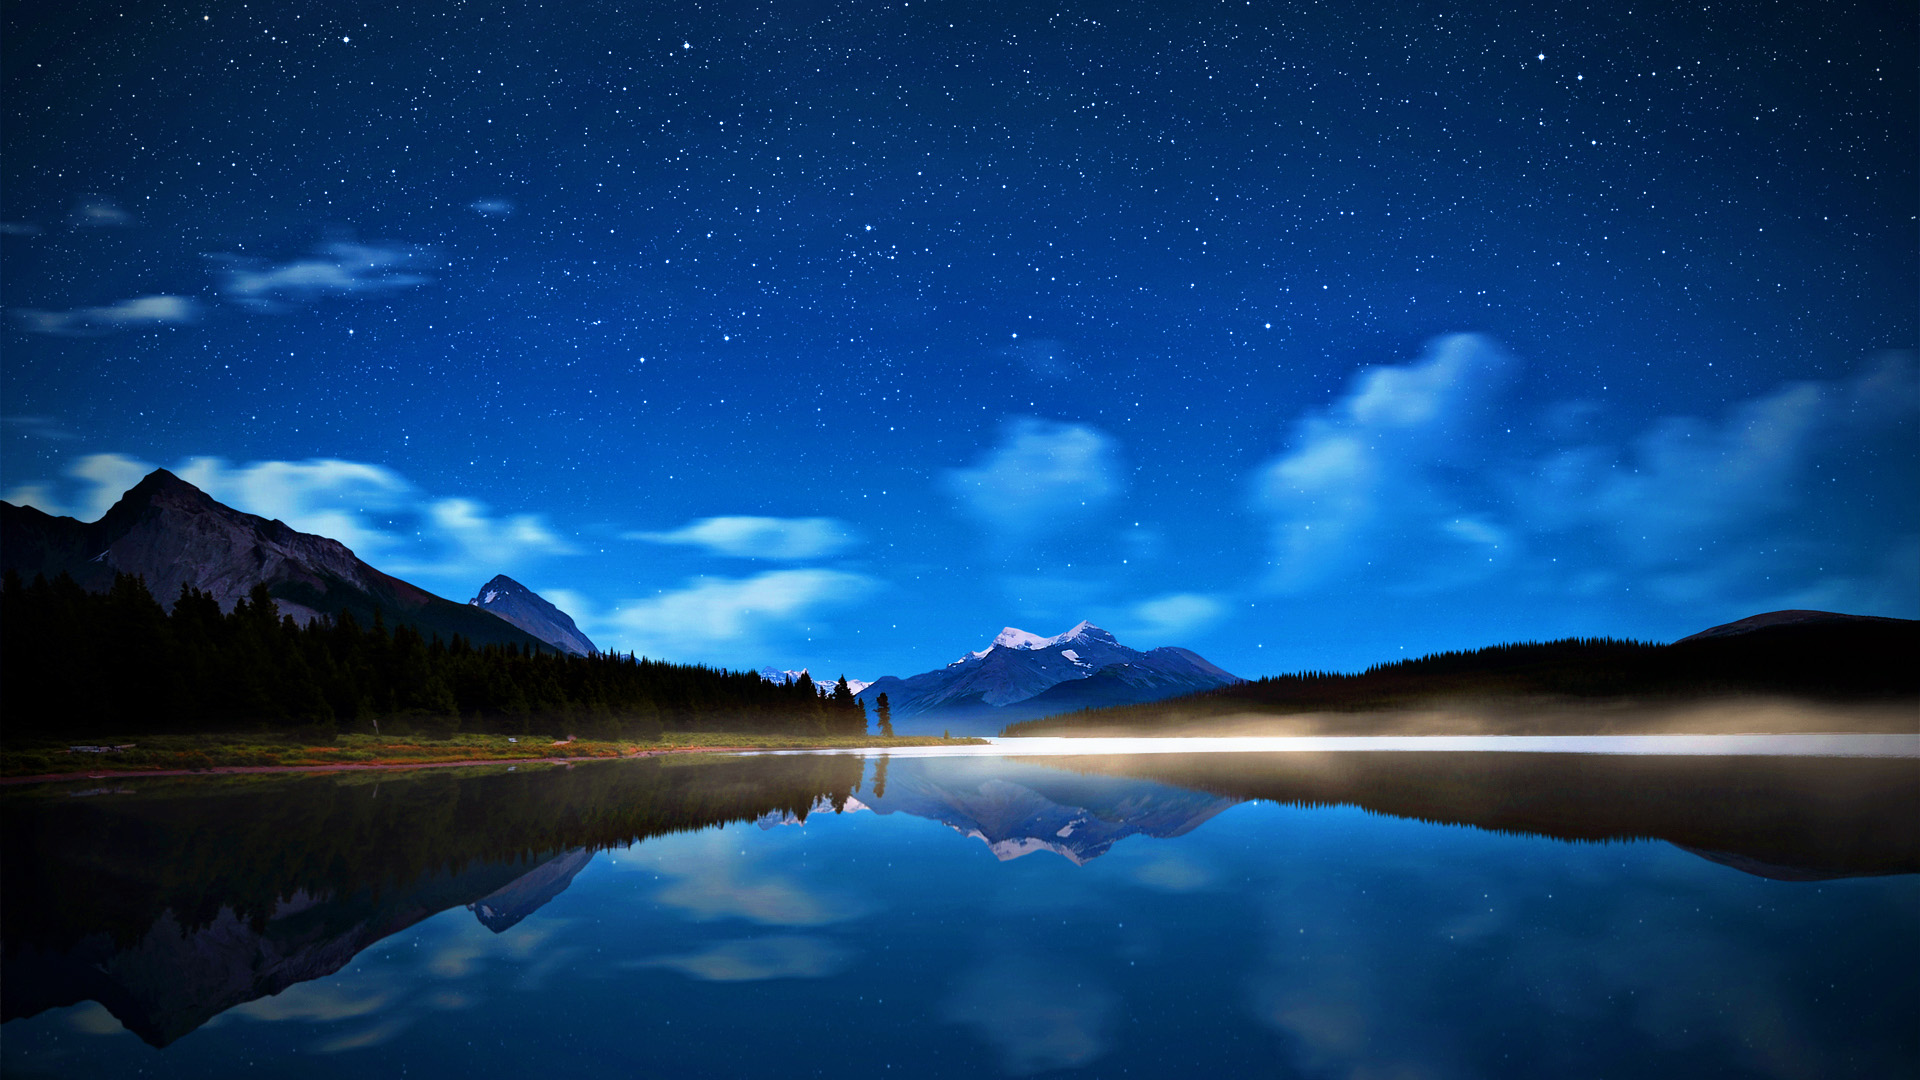 Beautiful Night Sky Wallpaper 46263 1920x1080 px ...